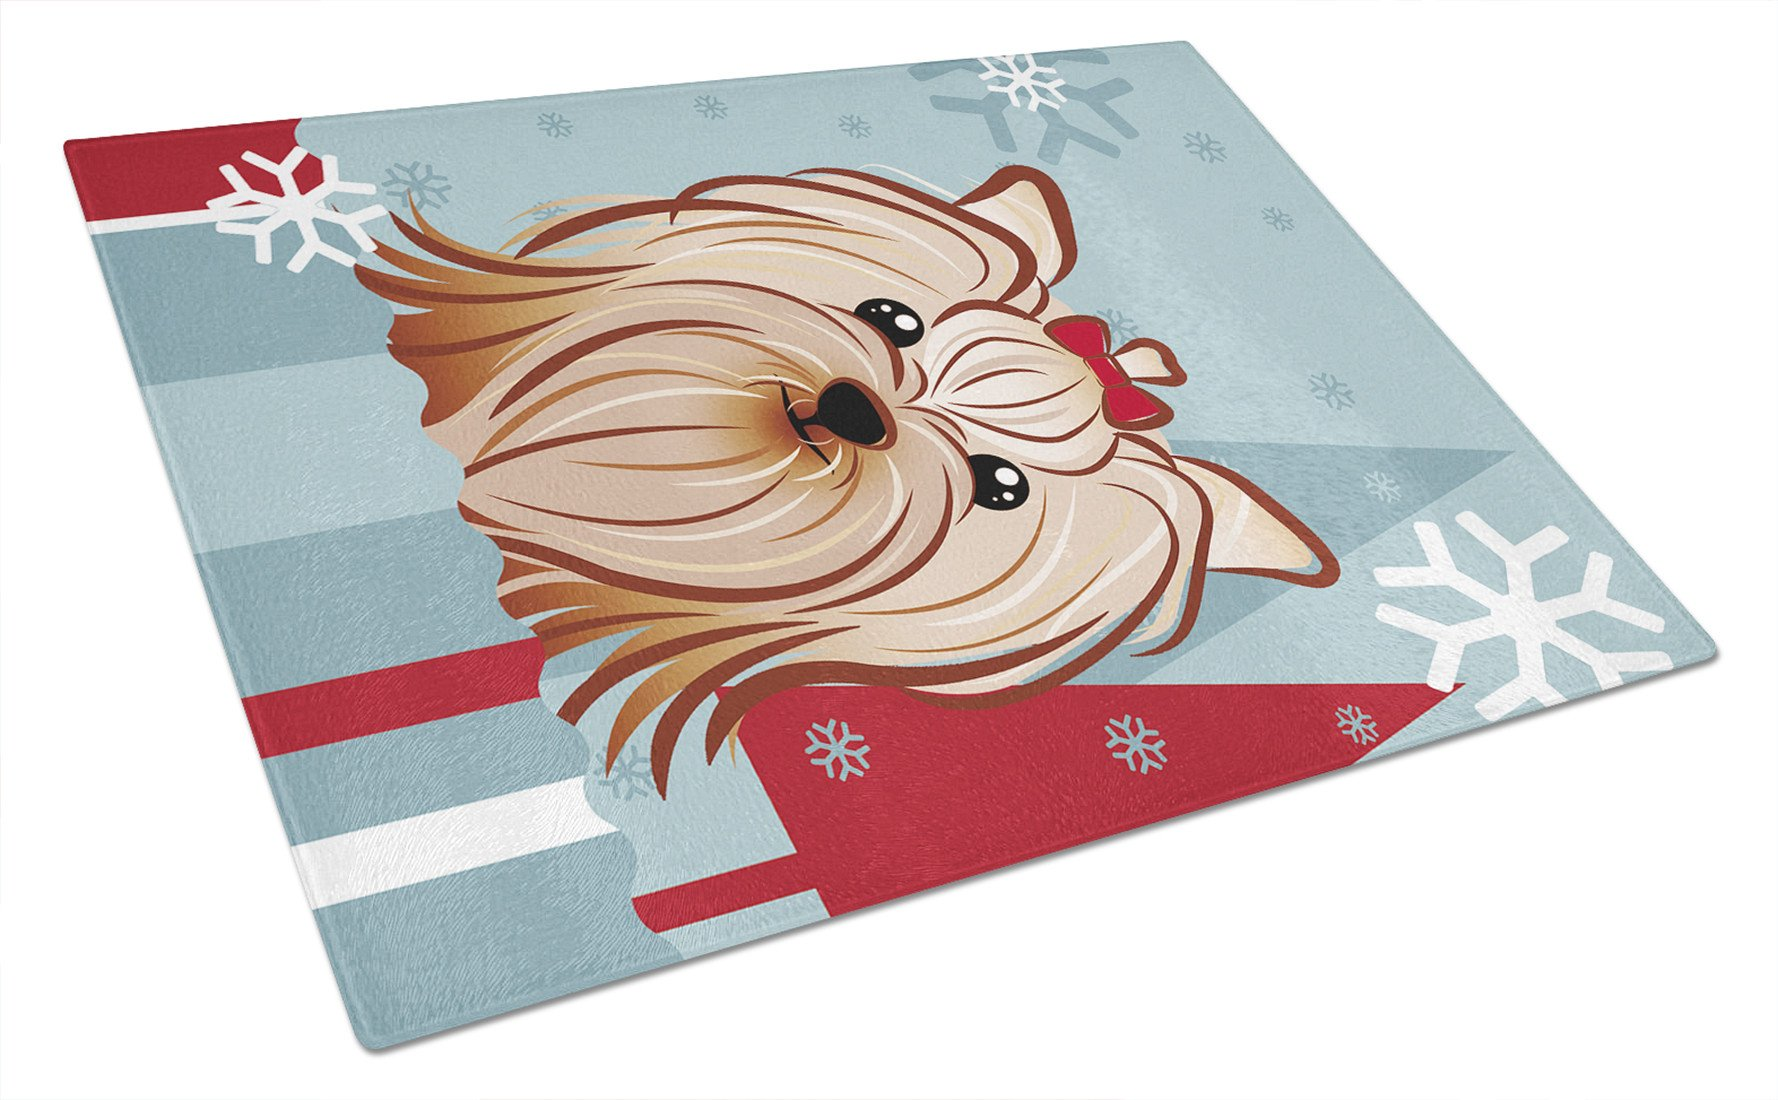 Winter Holiday Yorkie Yorkshire Terrier Glass Cutting Board Large BB1700LCB by Caroline's Treasures